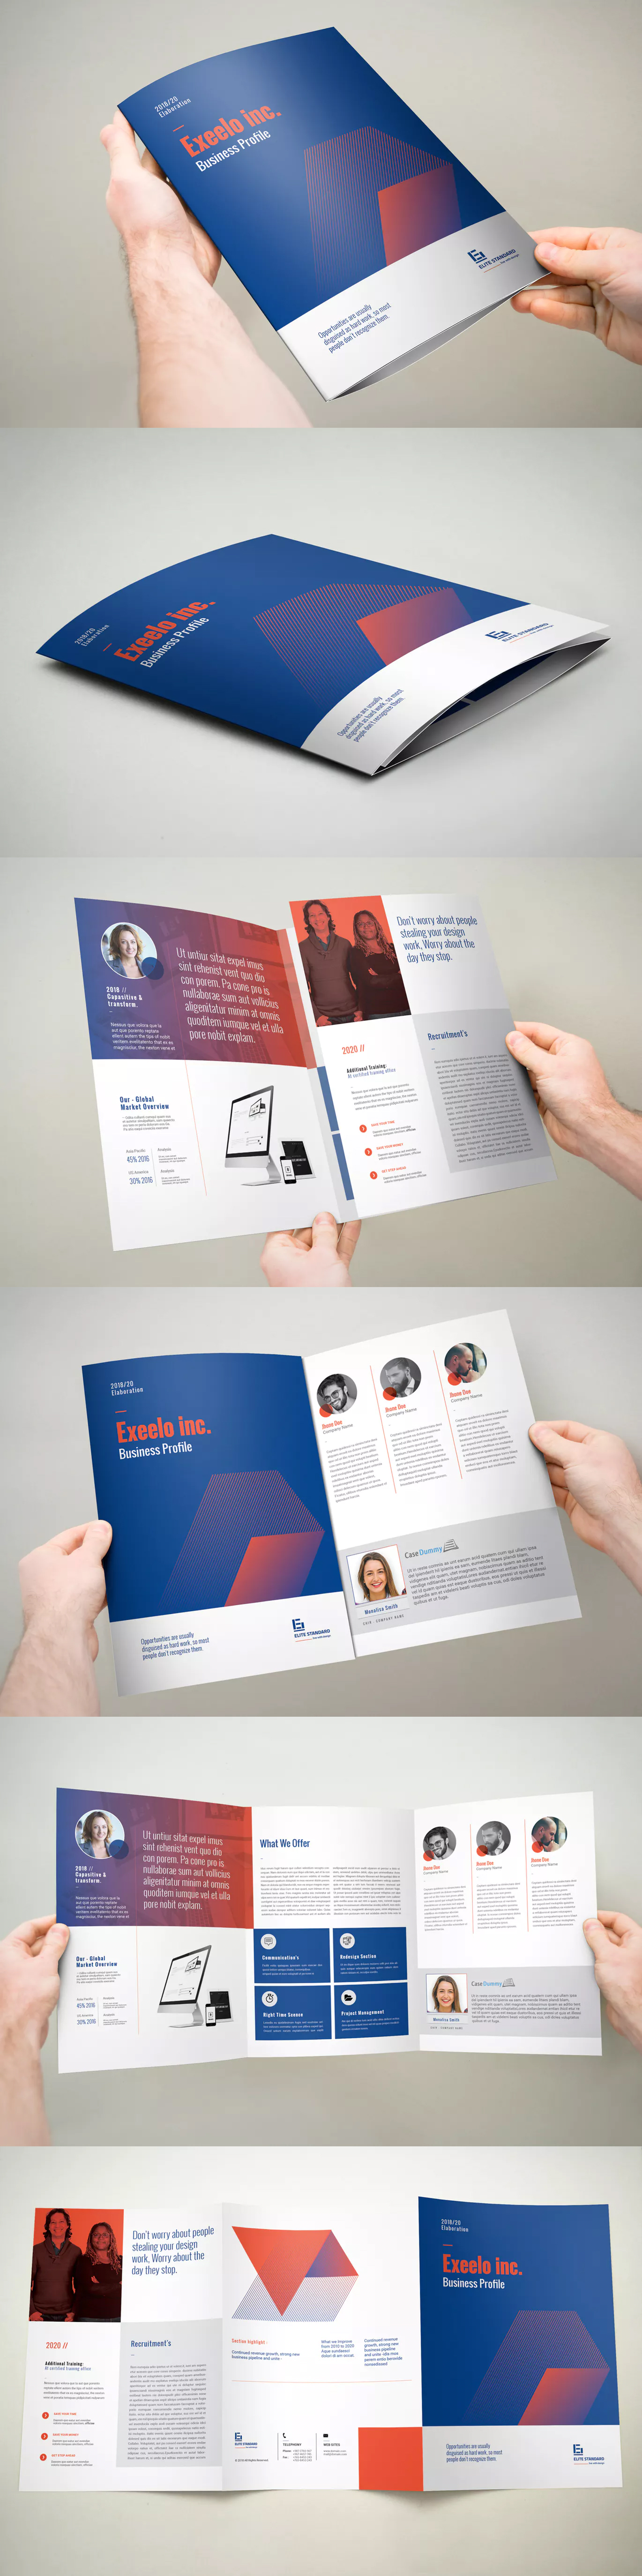 XA Trifold Brochure Template InDesign INDD A Muckup - Indesign trifold brochure template